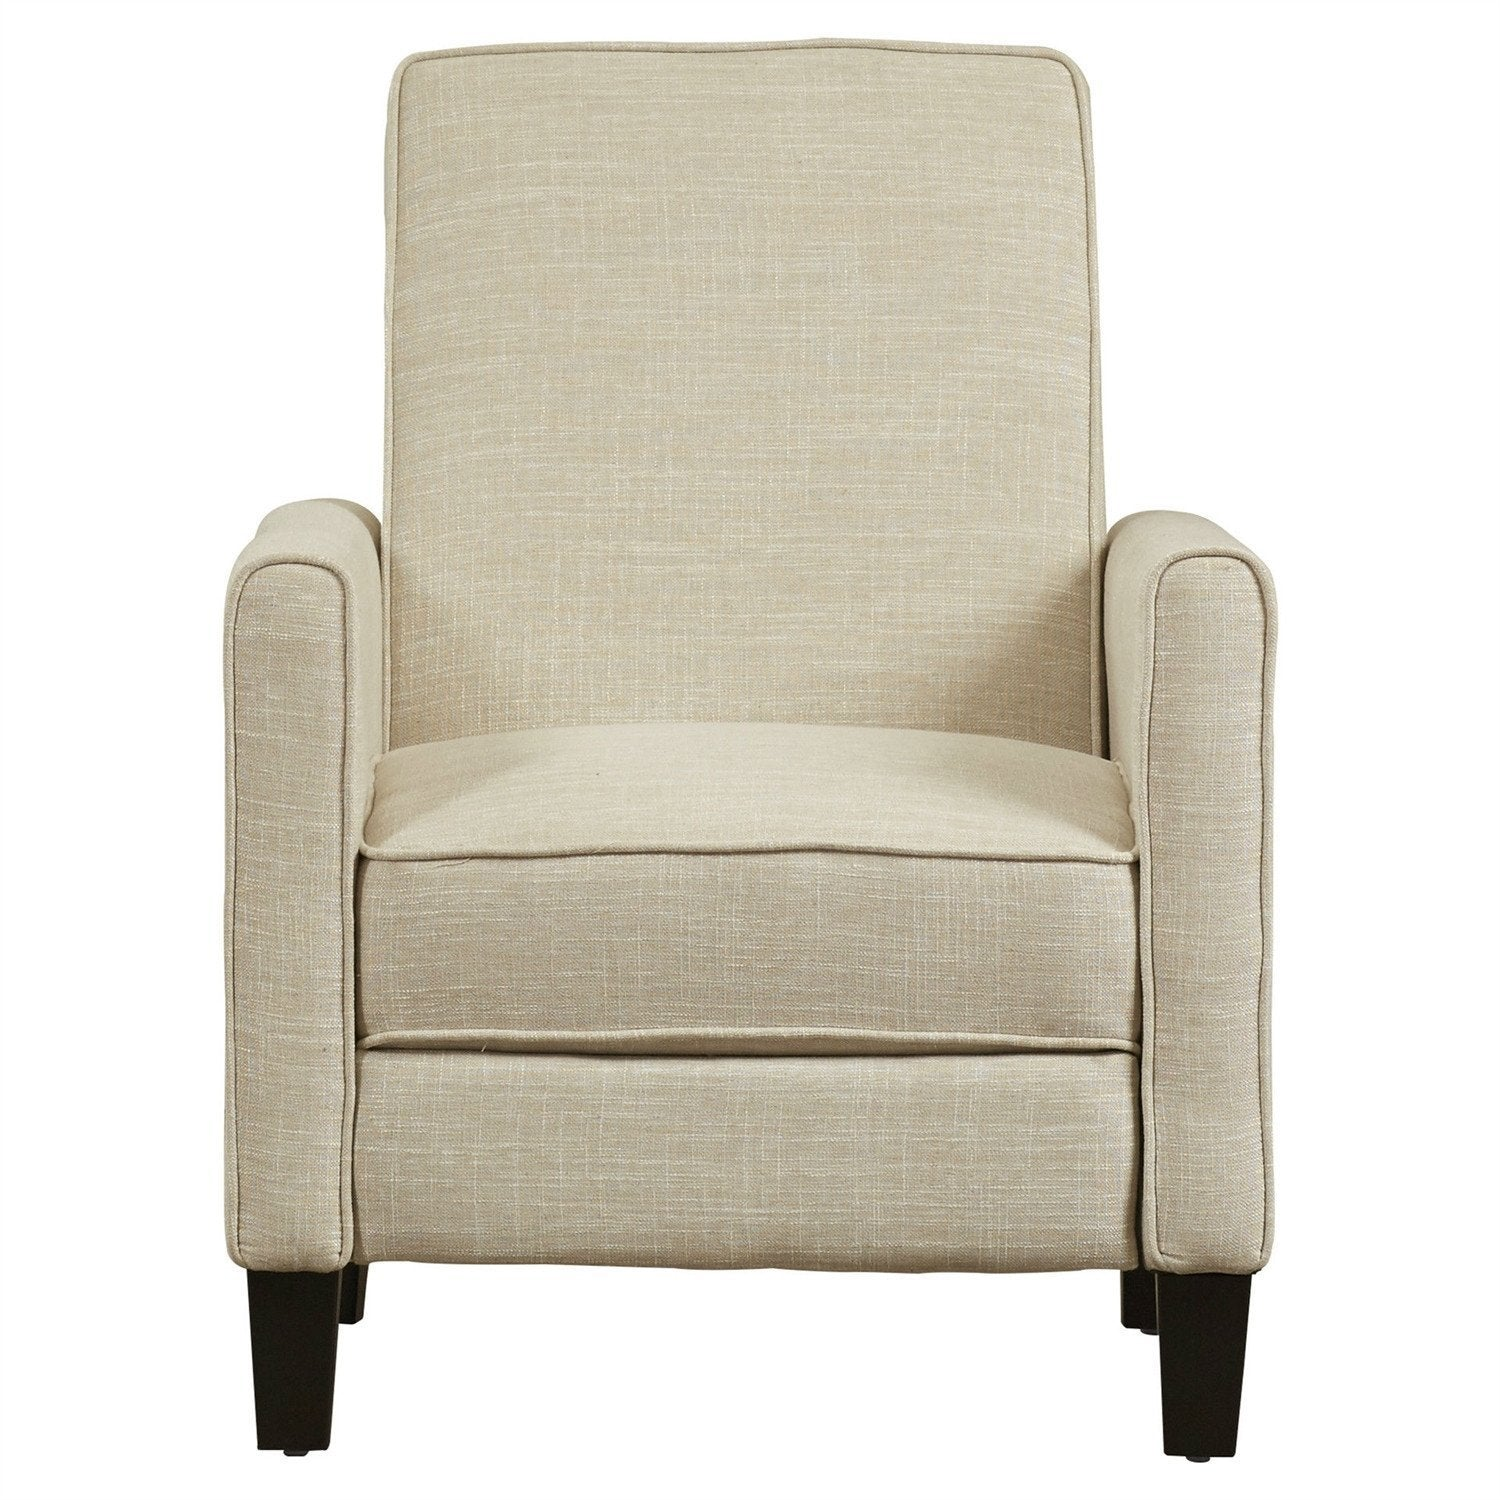 Club Chair Recliner Lounge in Light Beige Linen Upholstery.